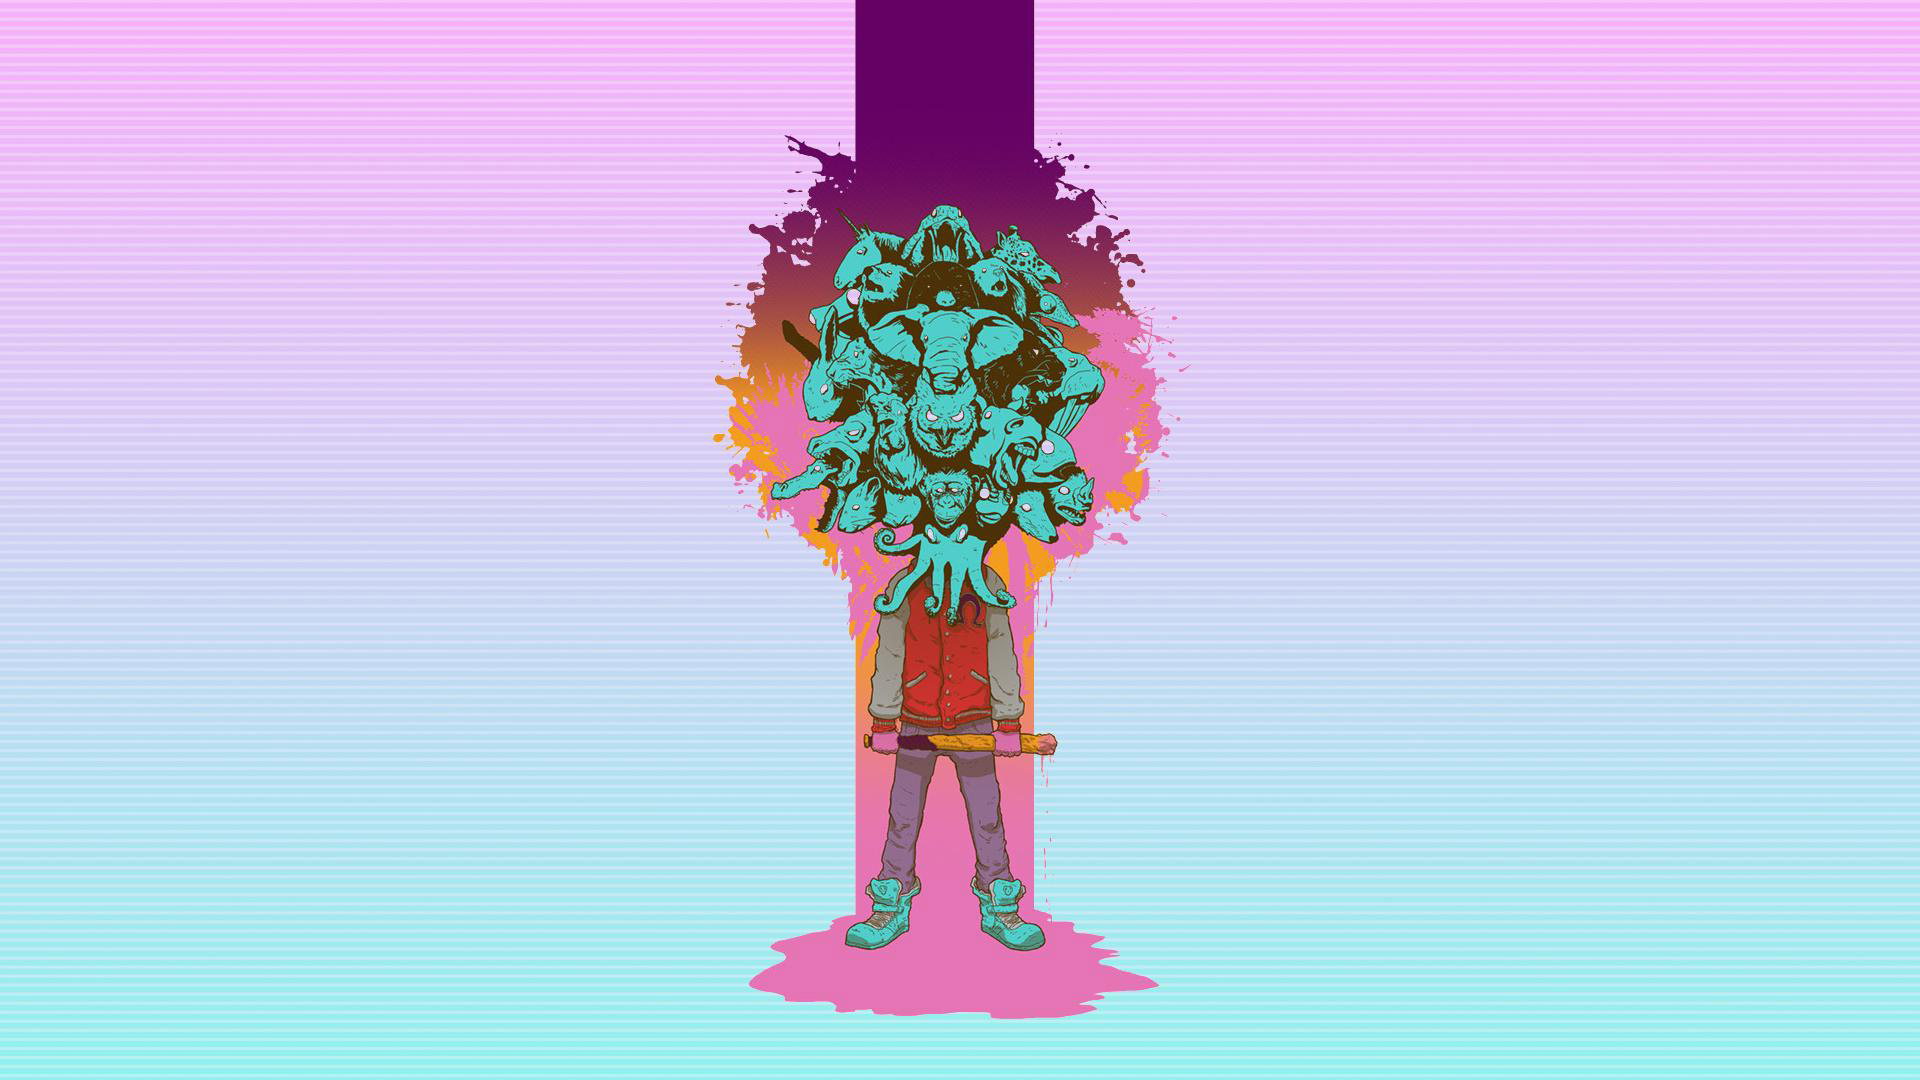 Free Hotline Miami 2: Wrong Number Wallpaper in 1920x1080